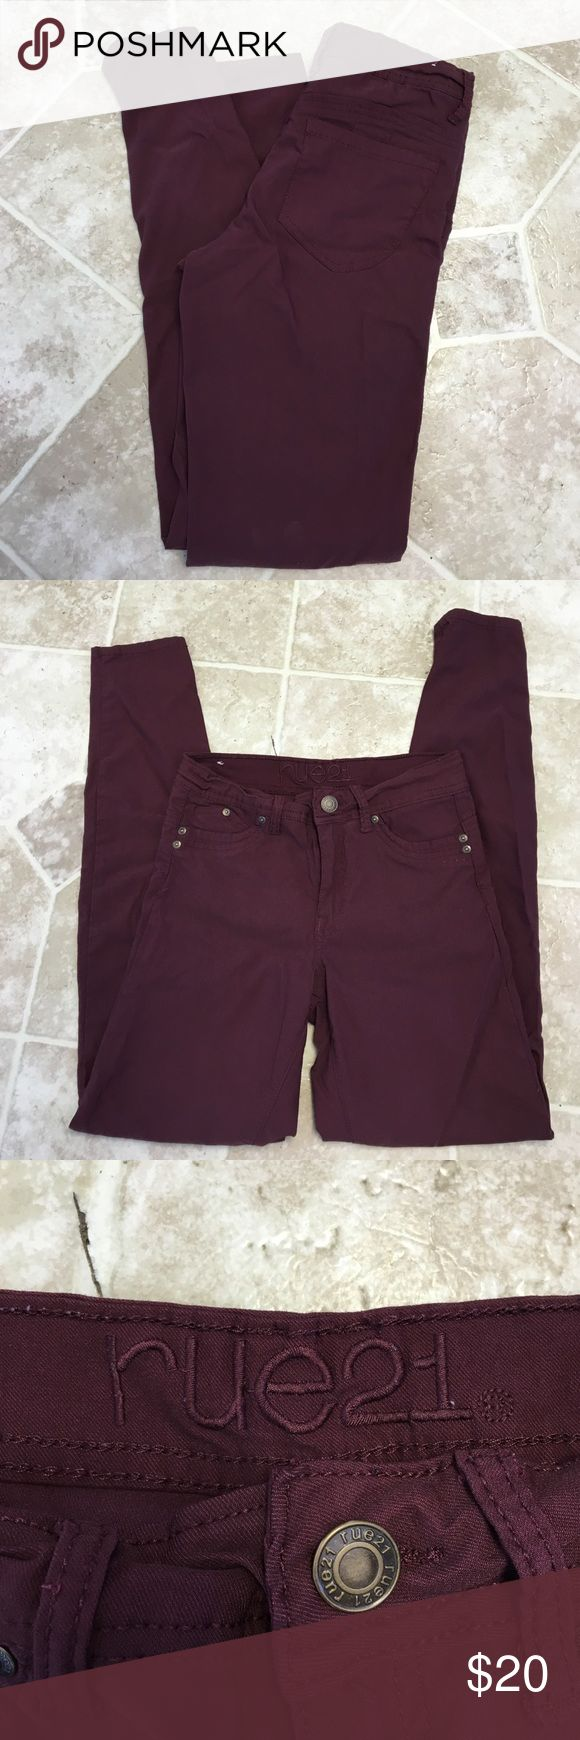 Maroon Rue 21 jeggings! Selling a pair of Rue 21  women's jeggings! Very comfortable and stretchy. Size 7/8. Mid rise Rue 21 Jeans Skinny